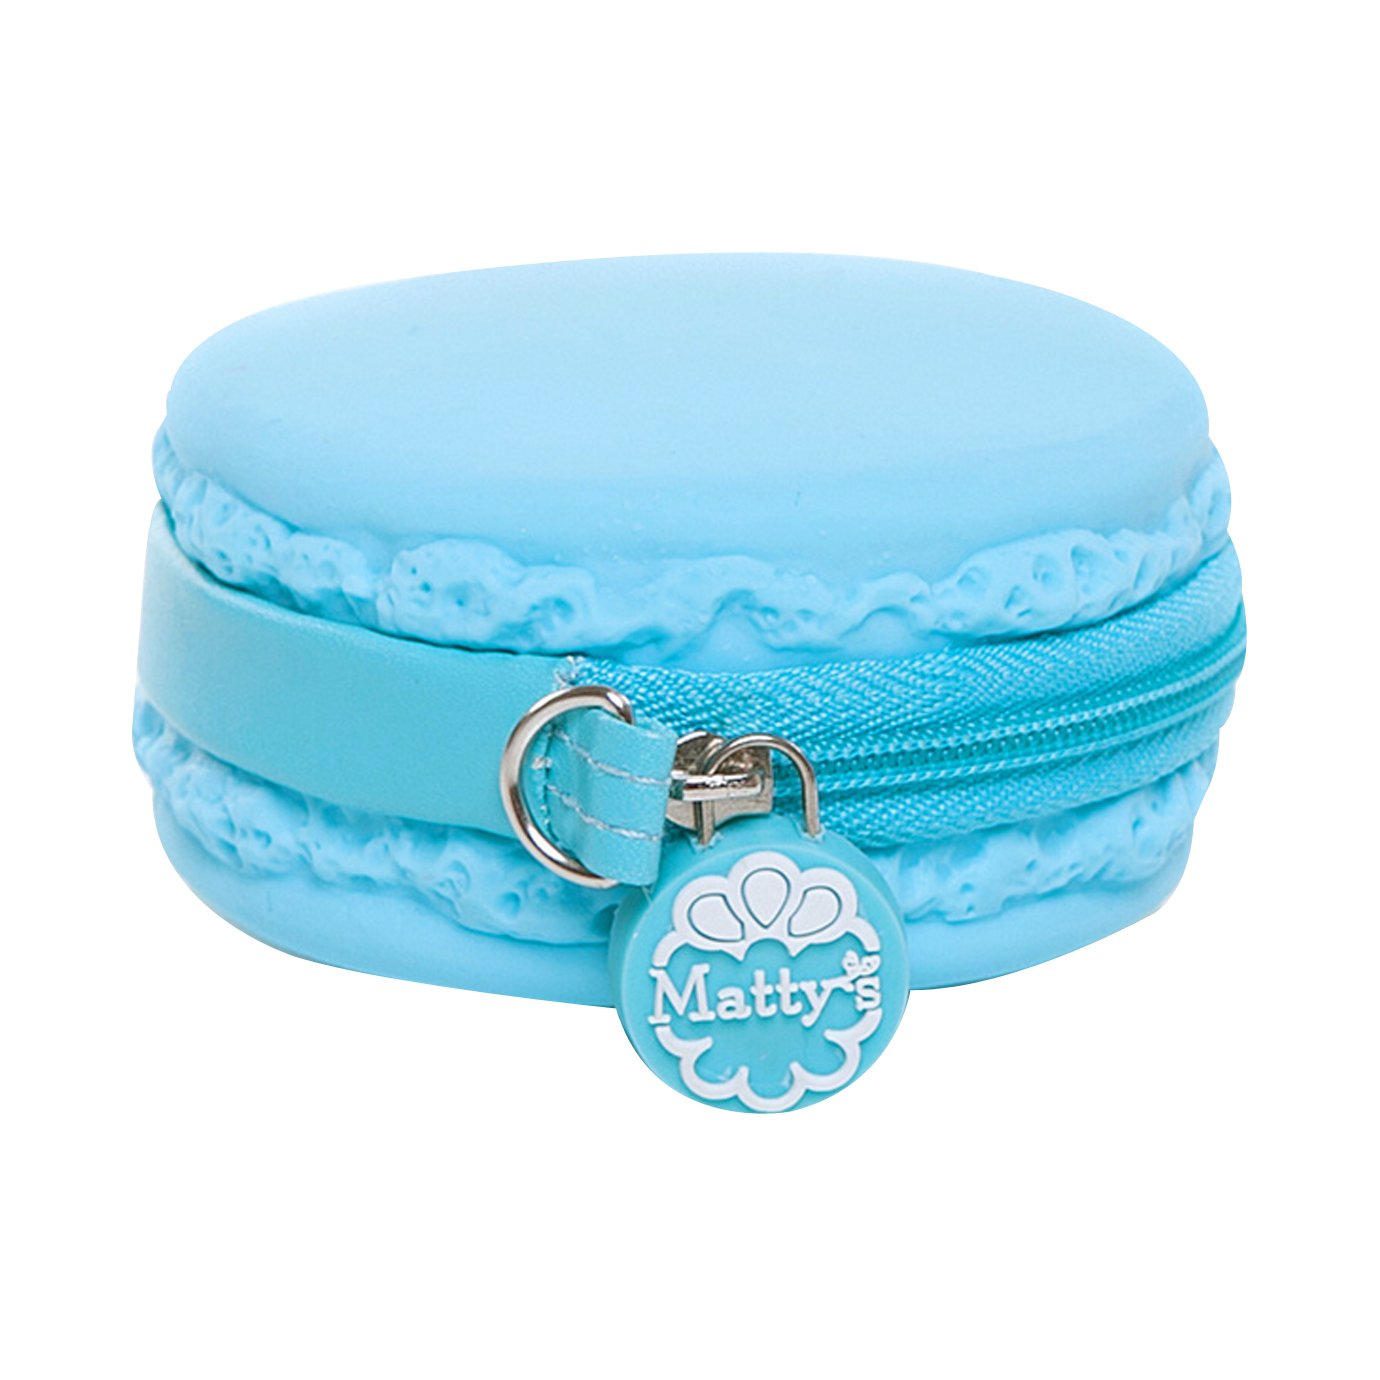 Mily Adorable Silicone Macaron Cookie Coin Purse Waterproof Change Purse with Chain Loop (Skyblue)